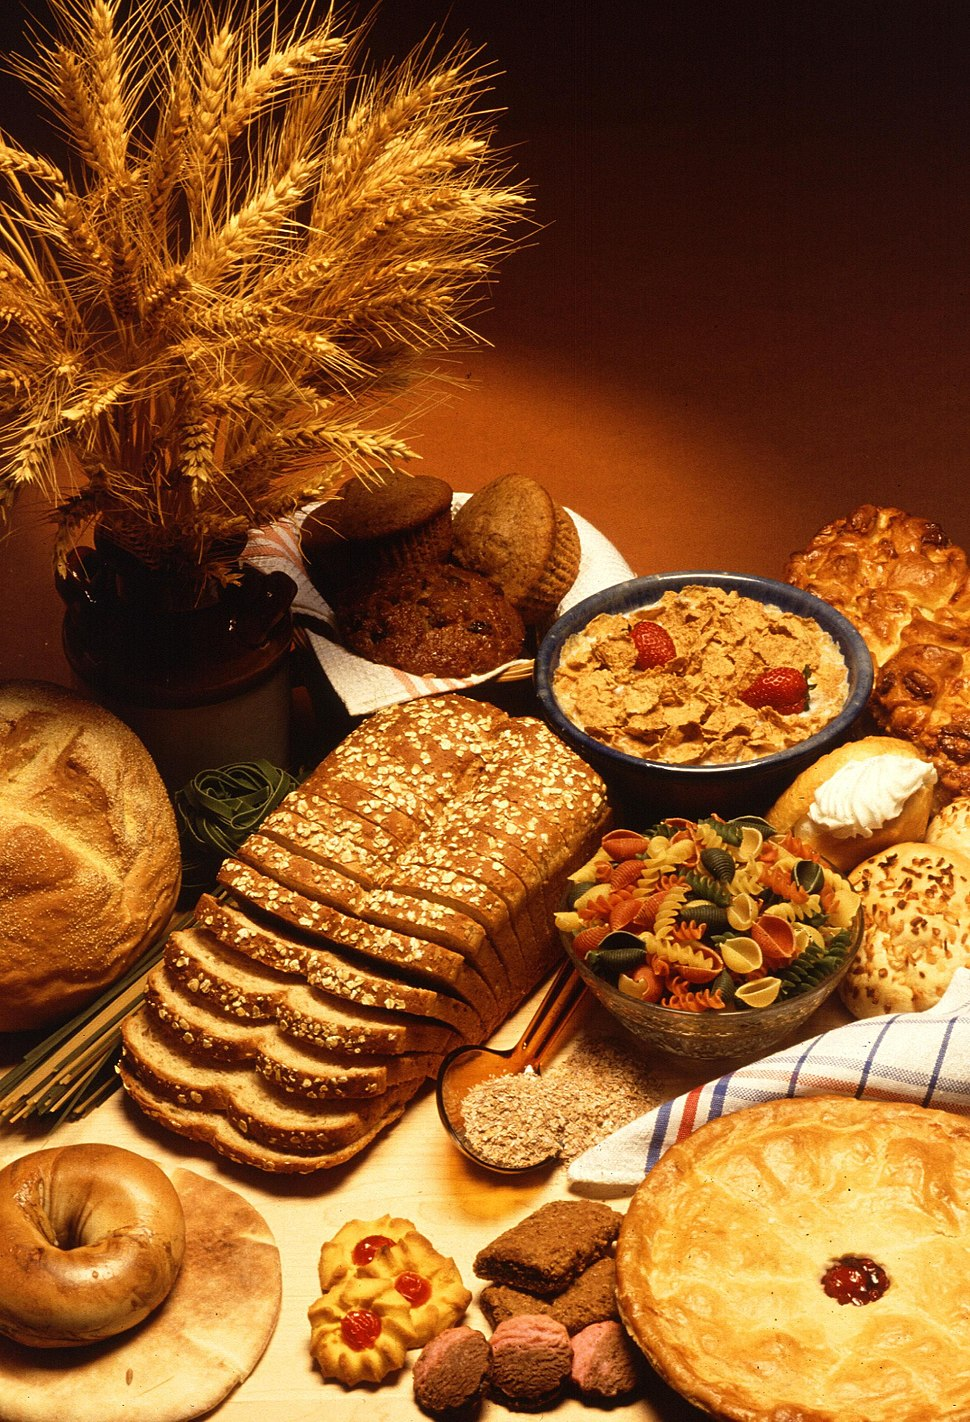 Wheat and wheat based foods